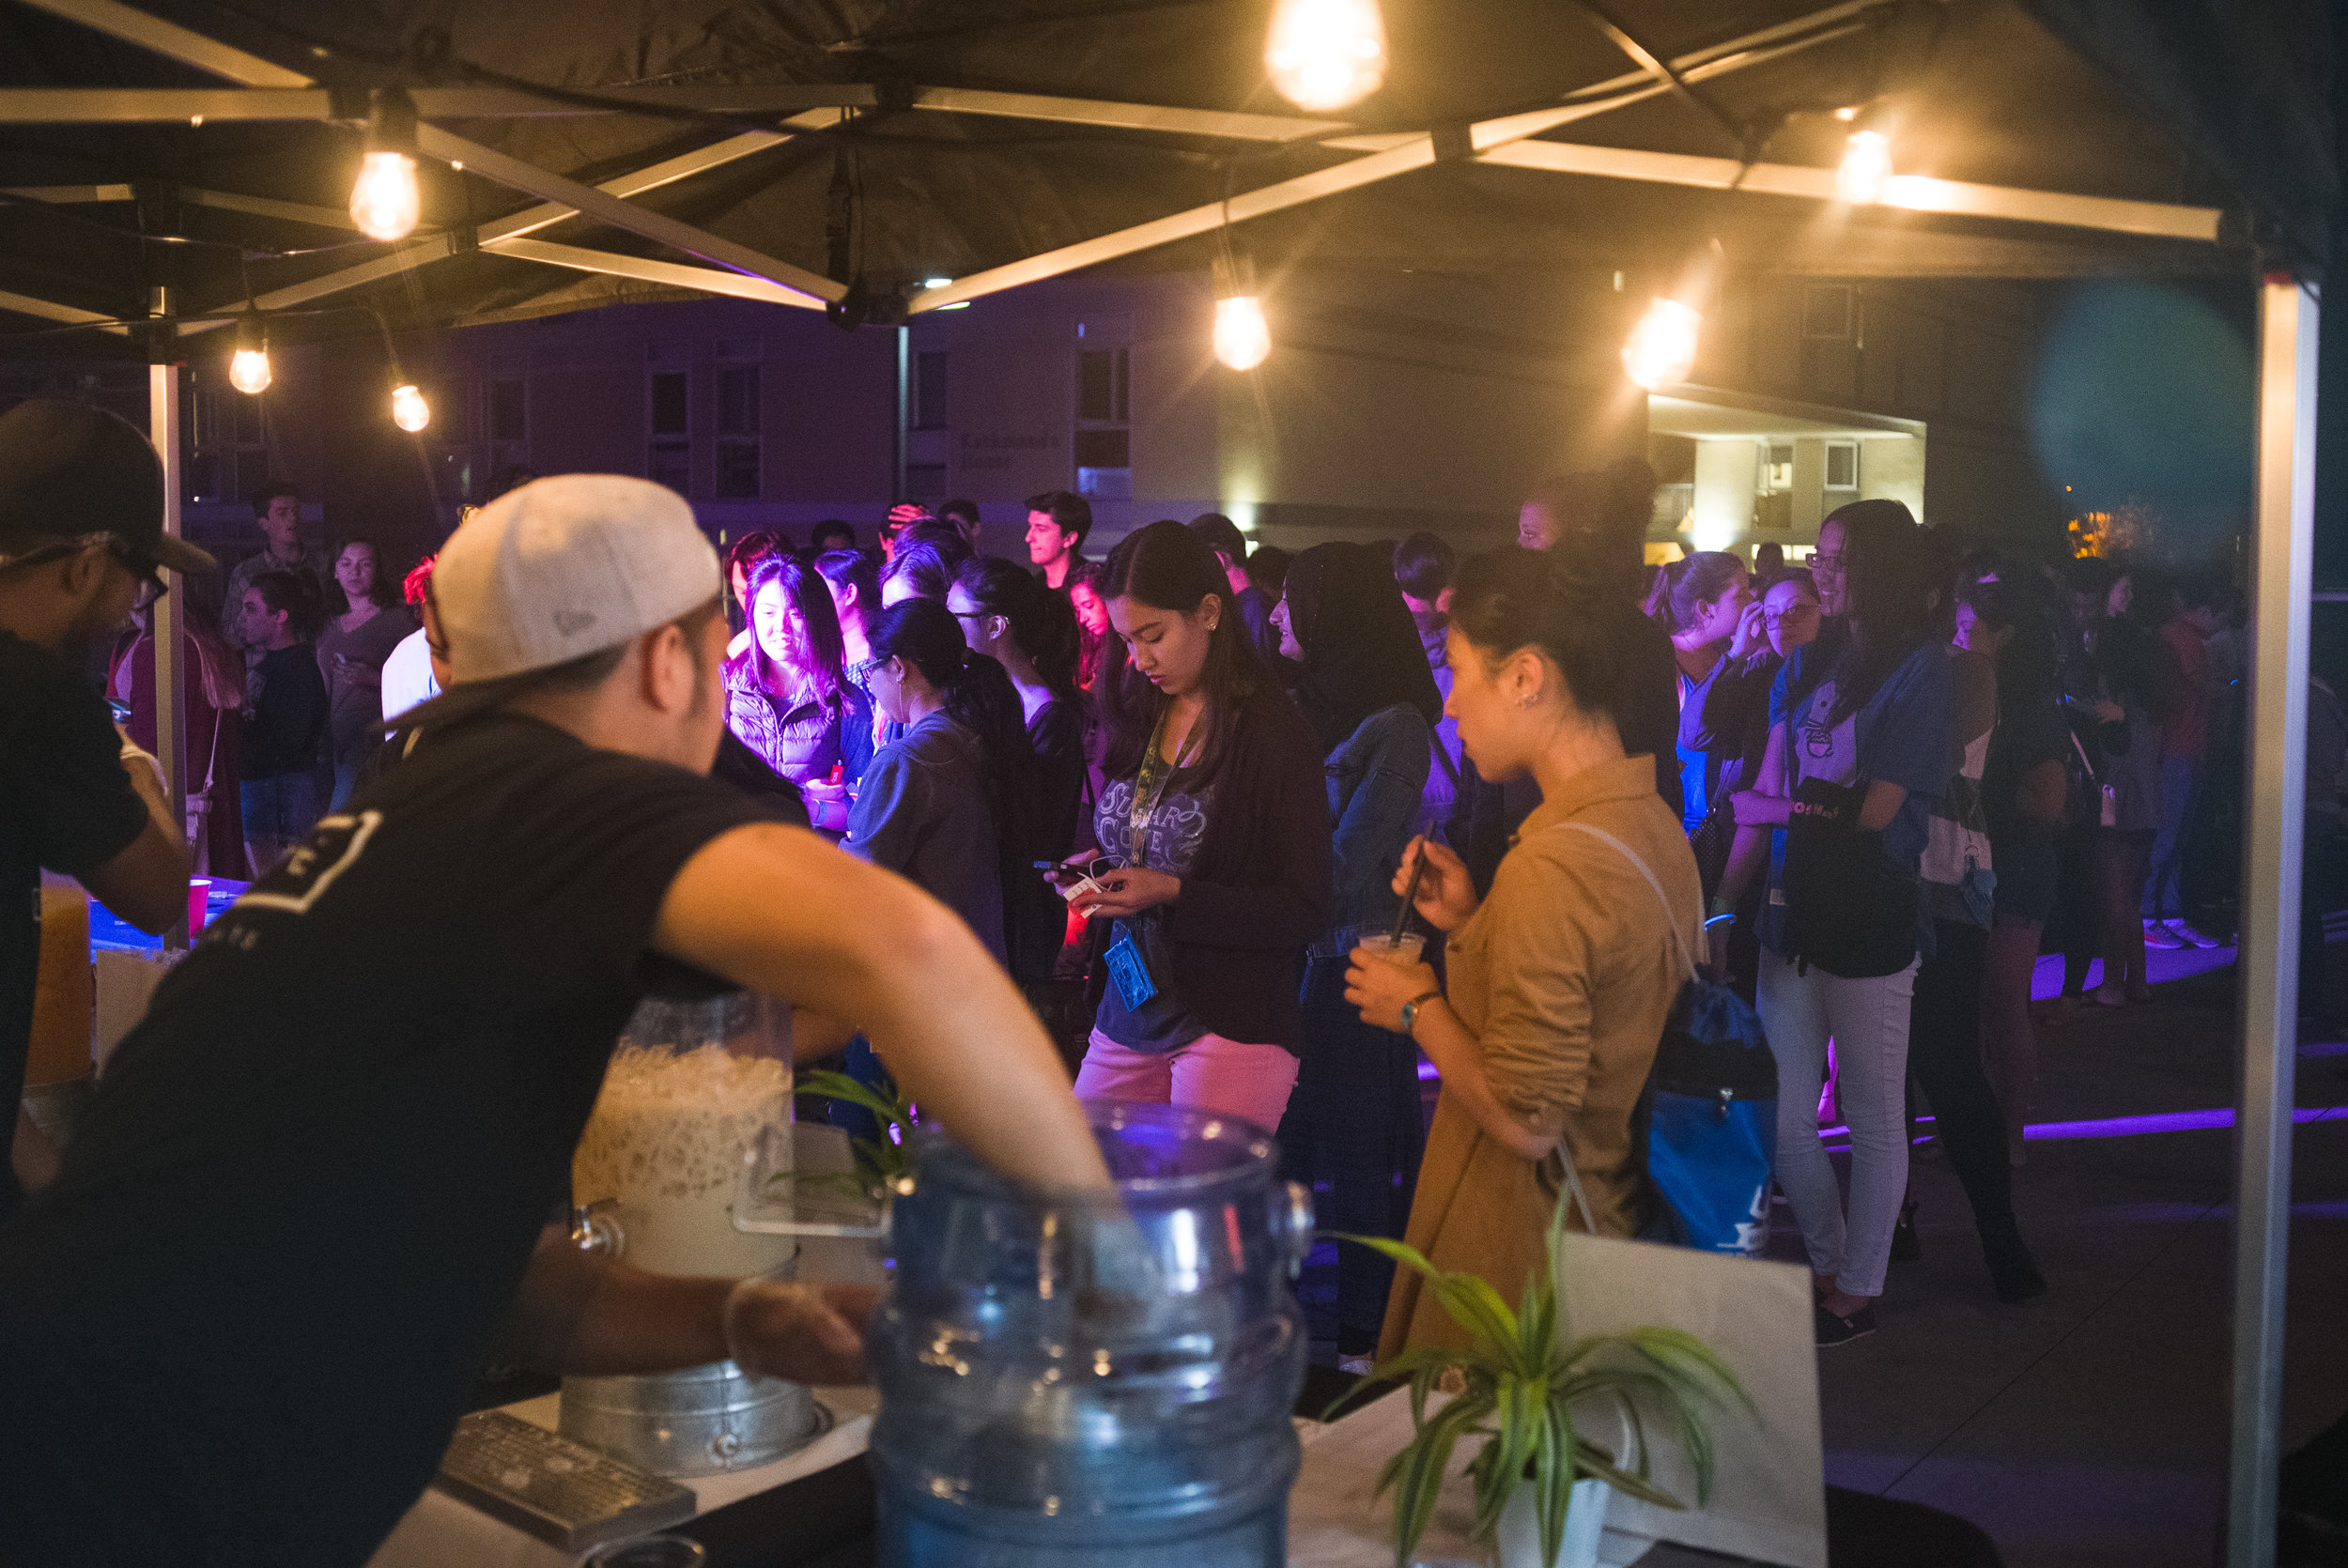 (2/2) In September 2016, we got to serve milk tea & boba to over 800 excited students of UC San Diego during the Triton Fest International Night Market.